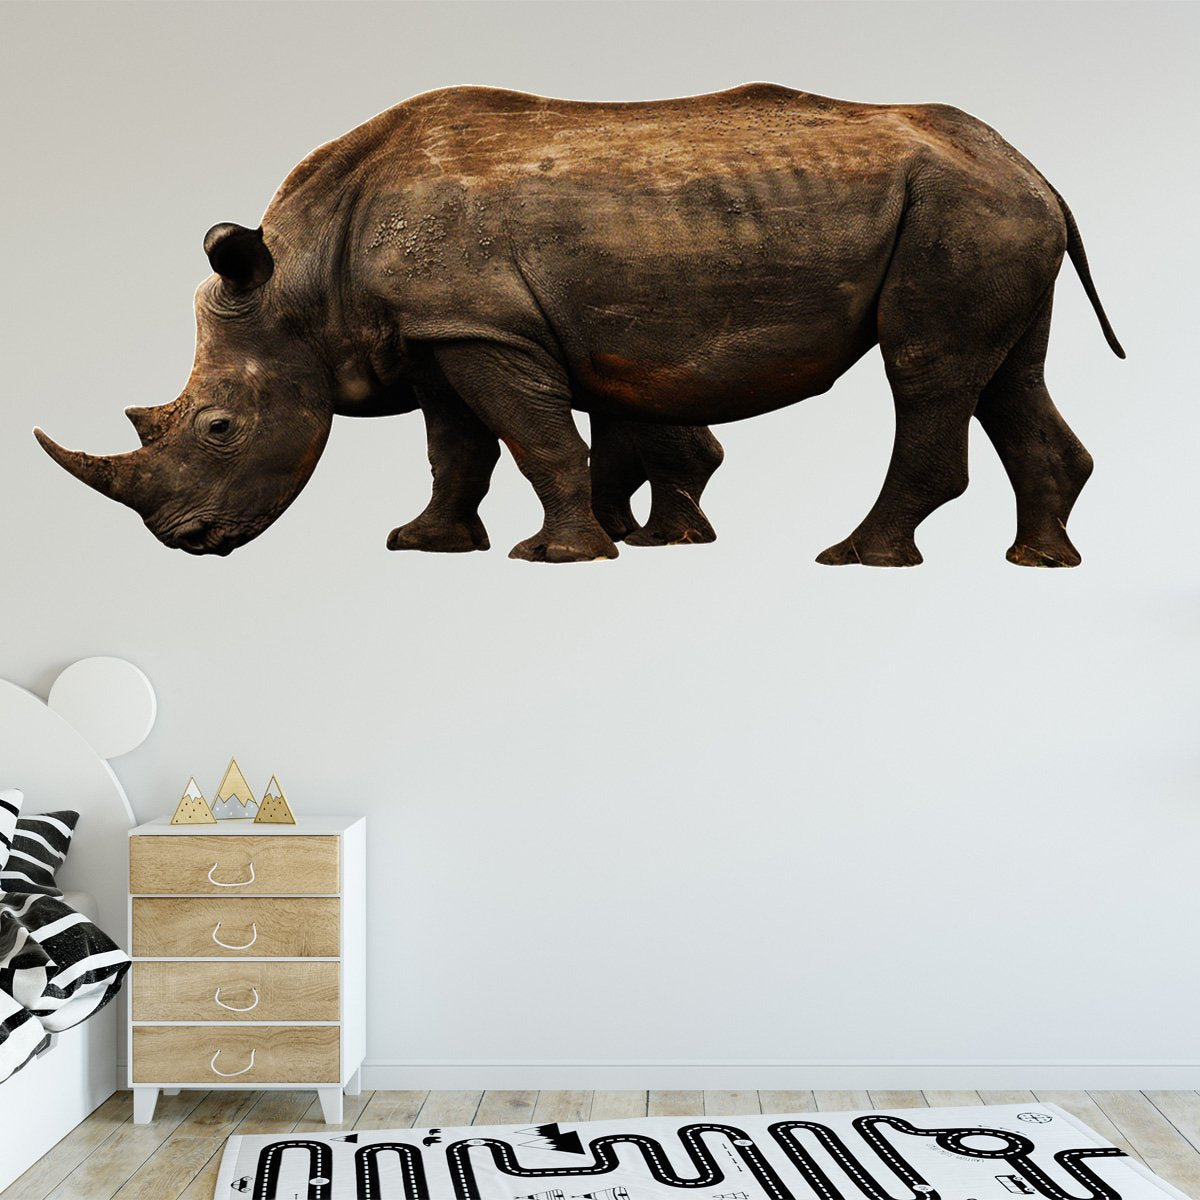 VWAQ Rhino Vinyl Wall Sticker - Rhinoceros Decor, Realistic Animal Wall Decals